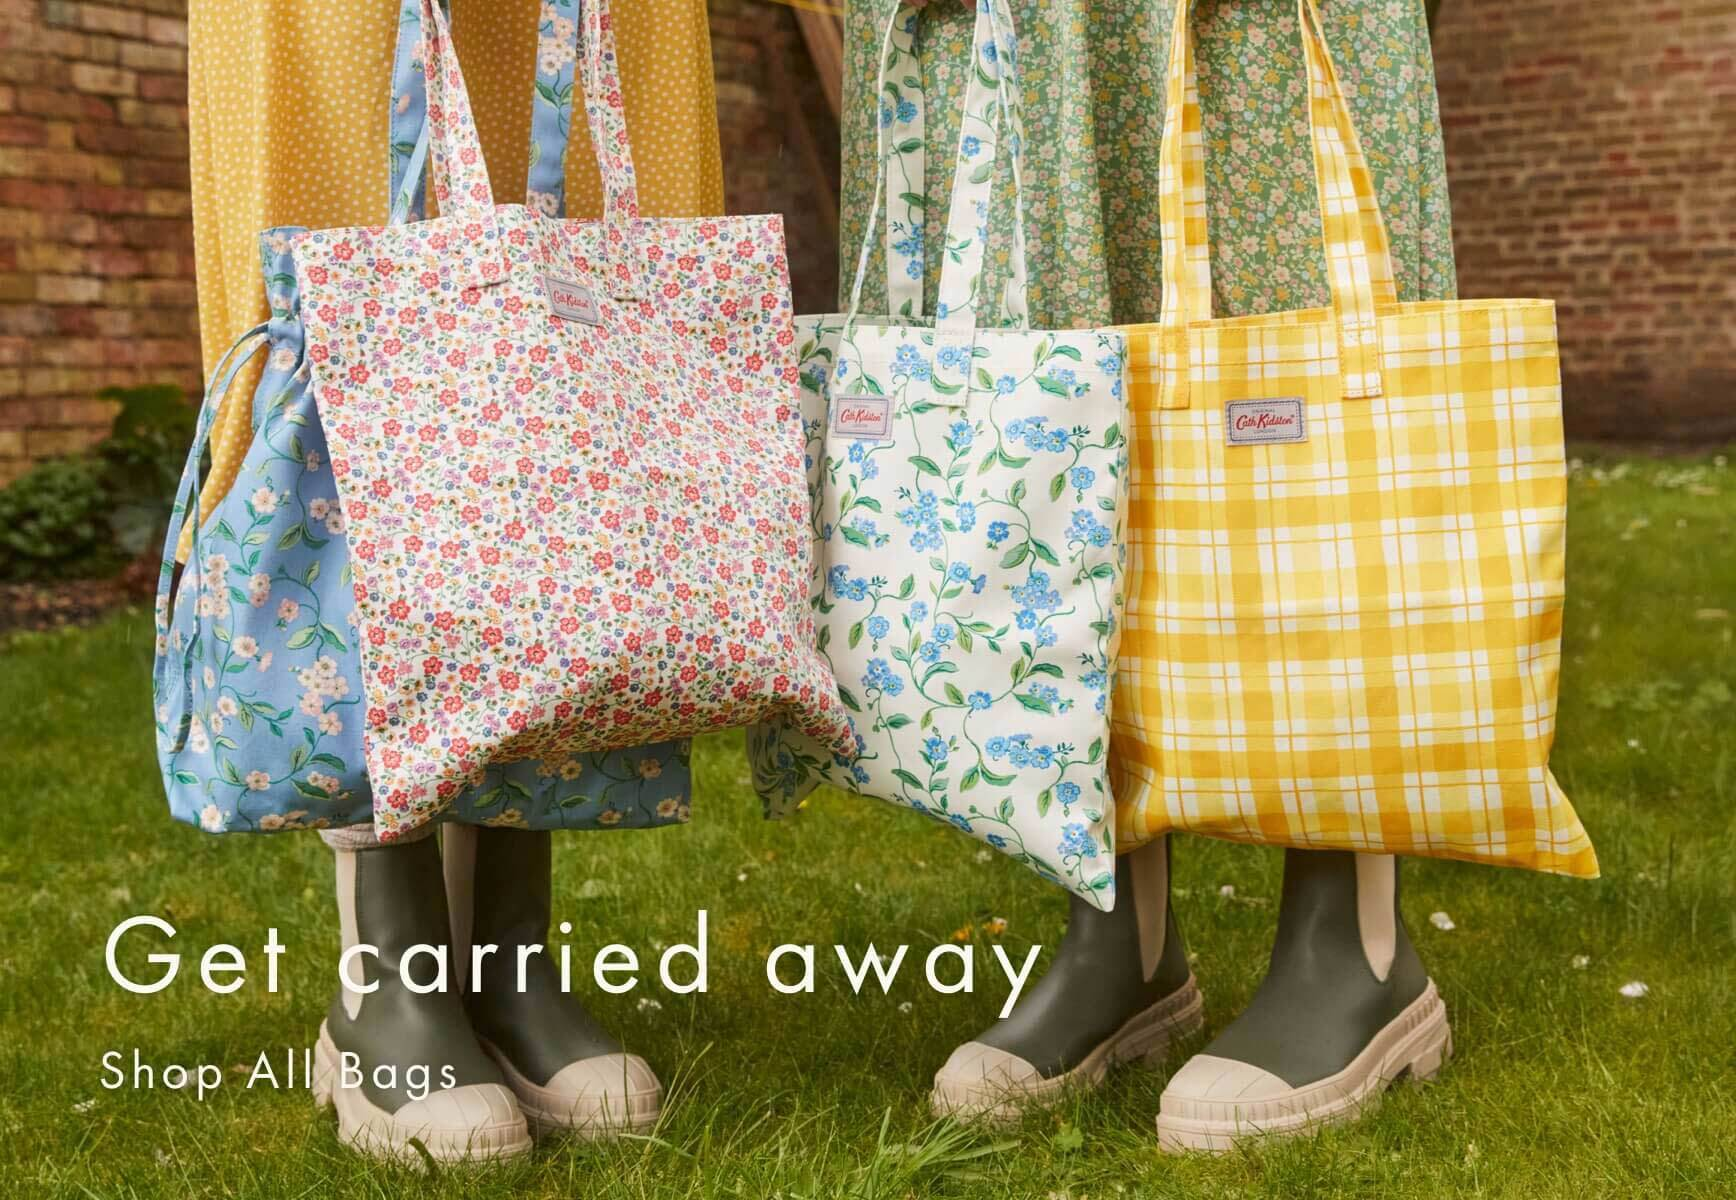 Bags of fun - Shop All Bags